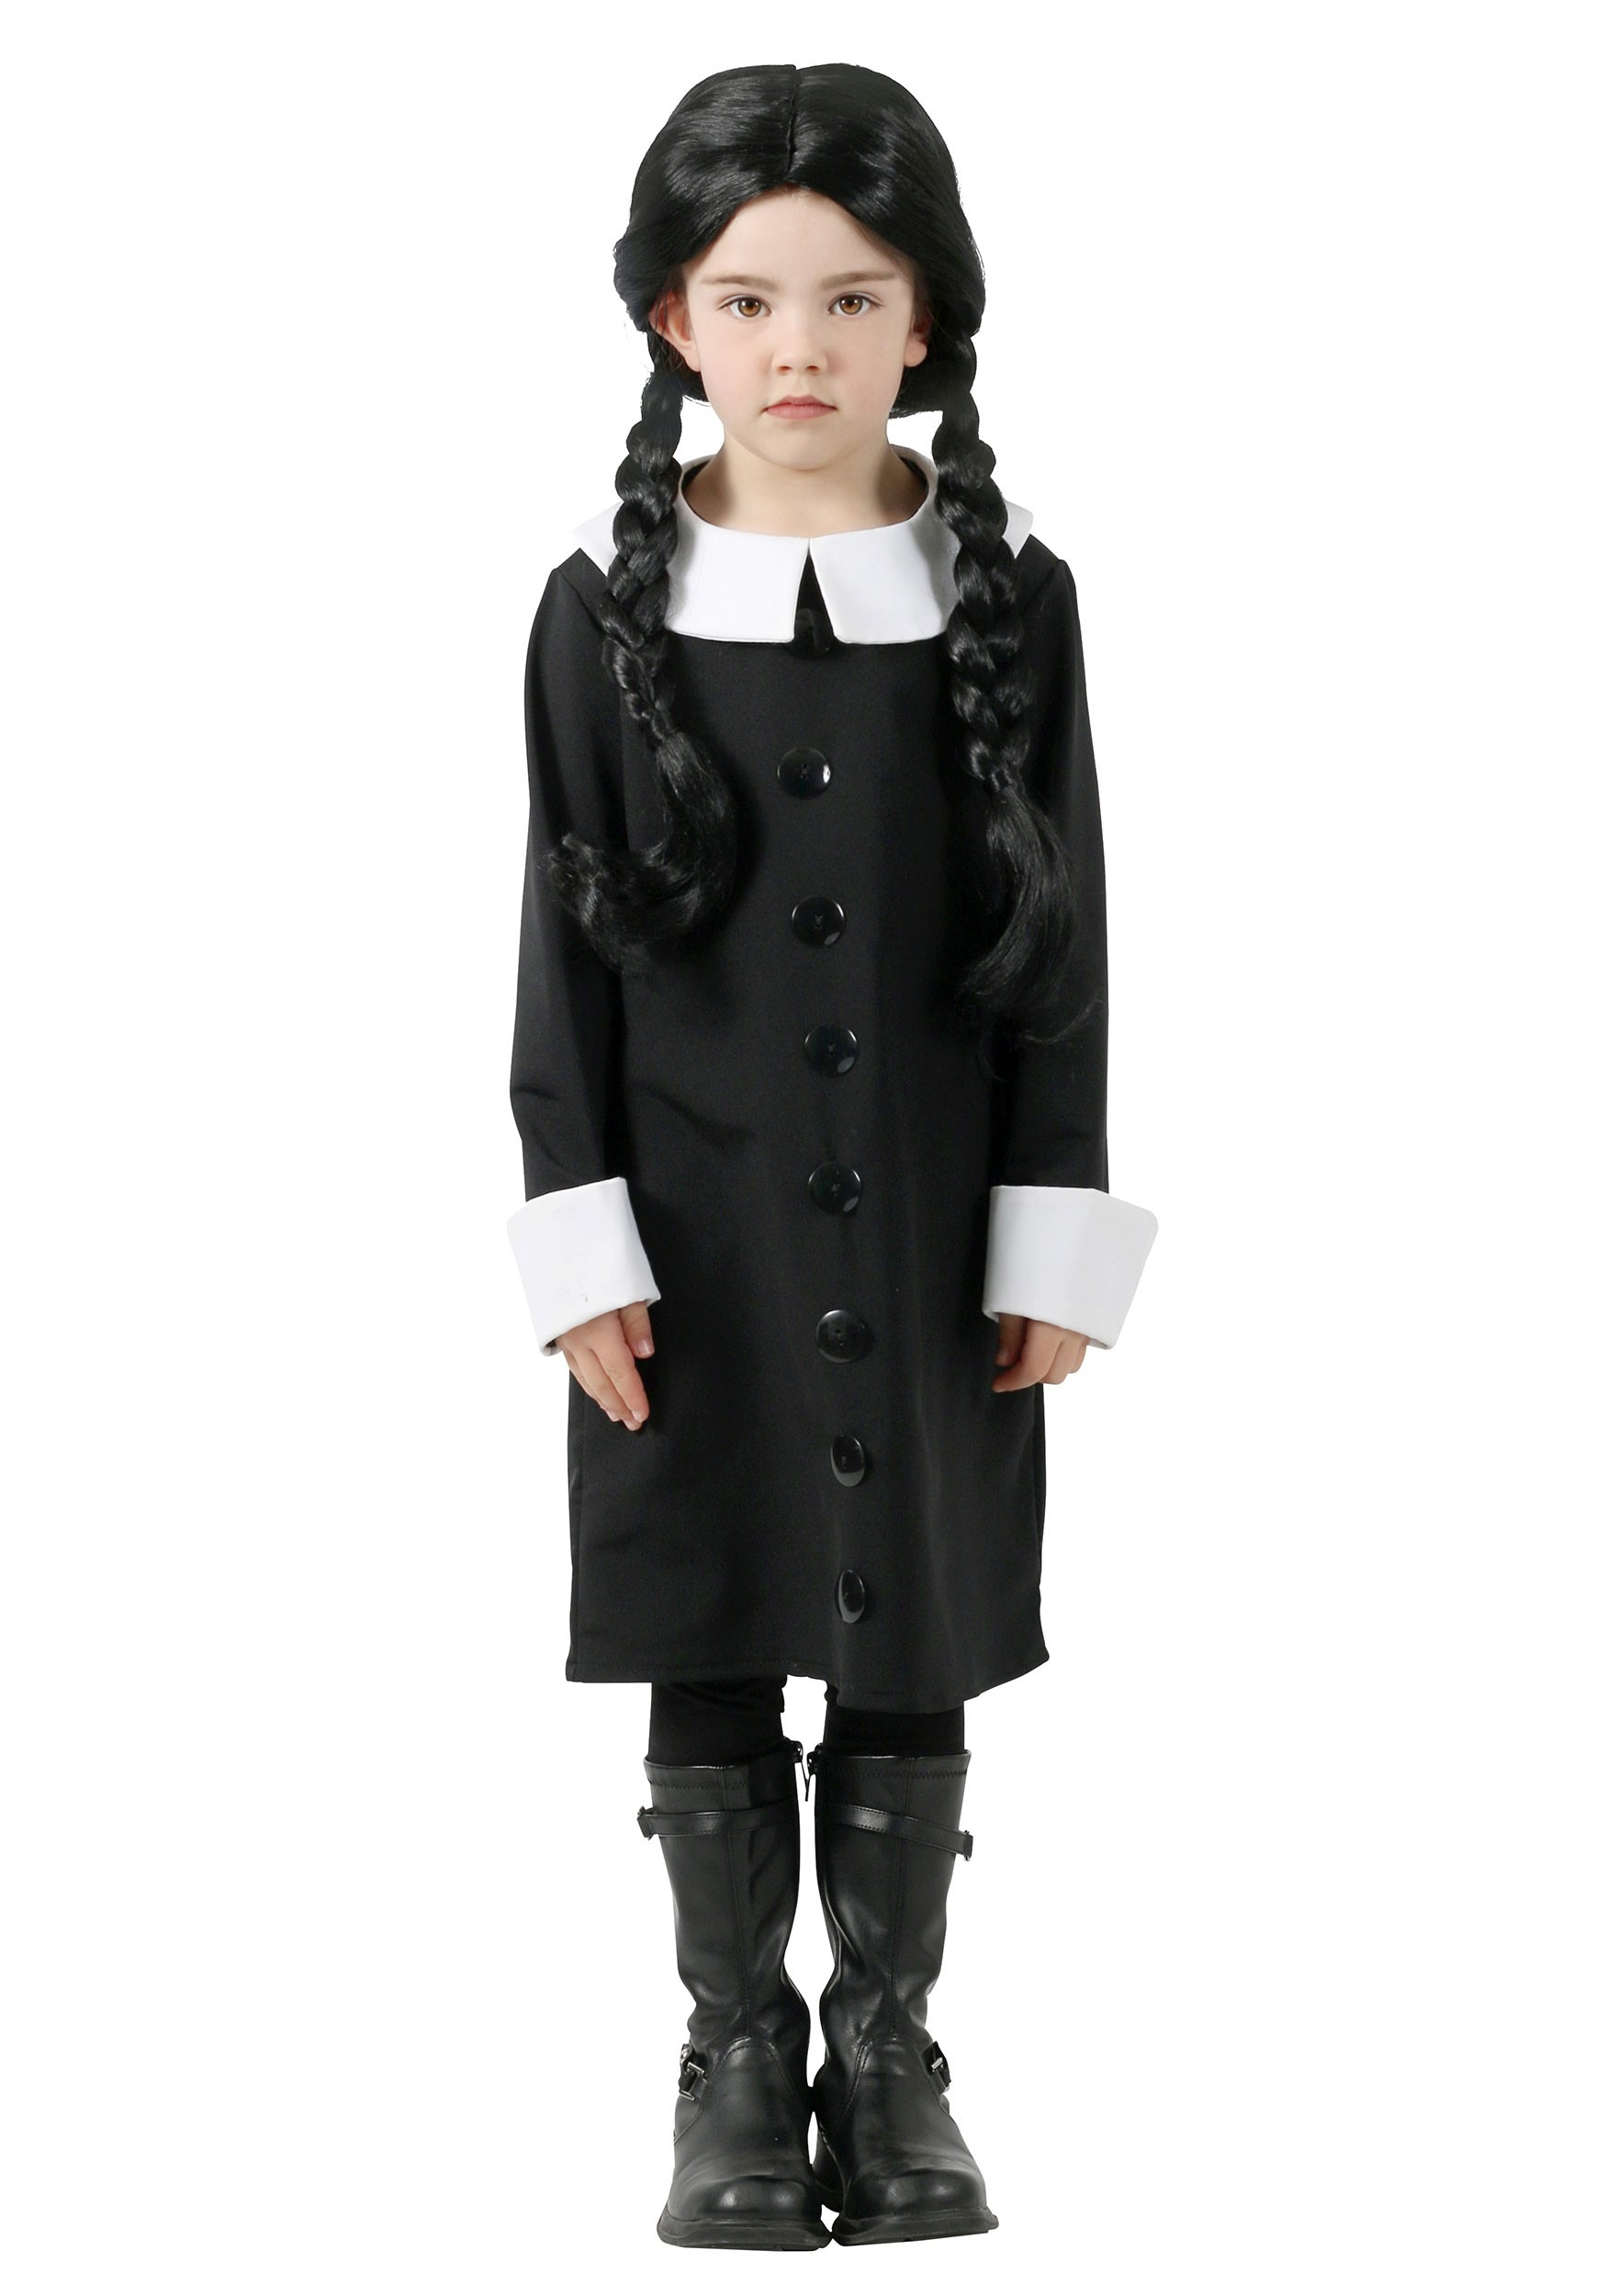 Addams Family Wednesday Addams Costume For Kids